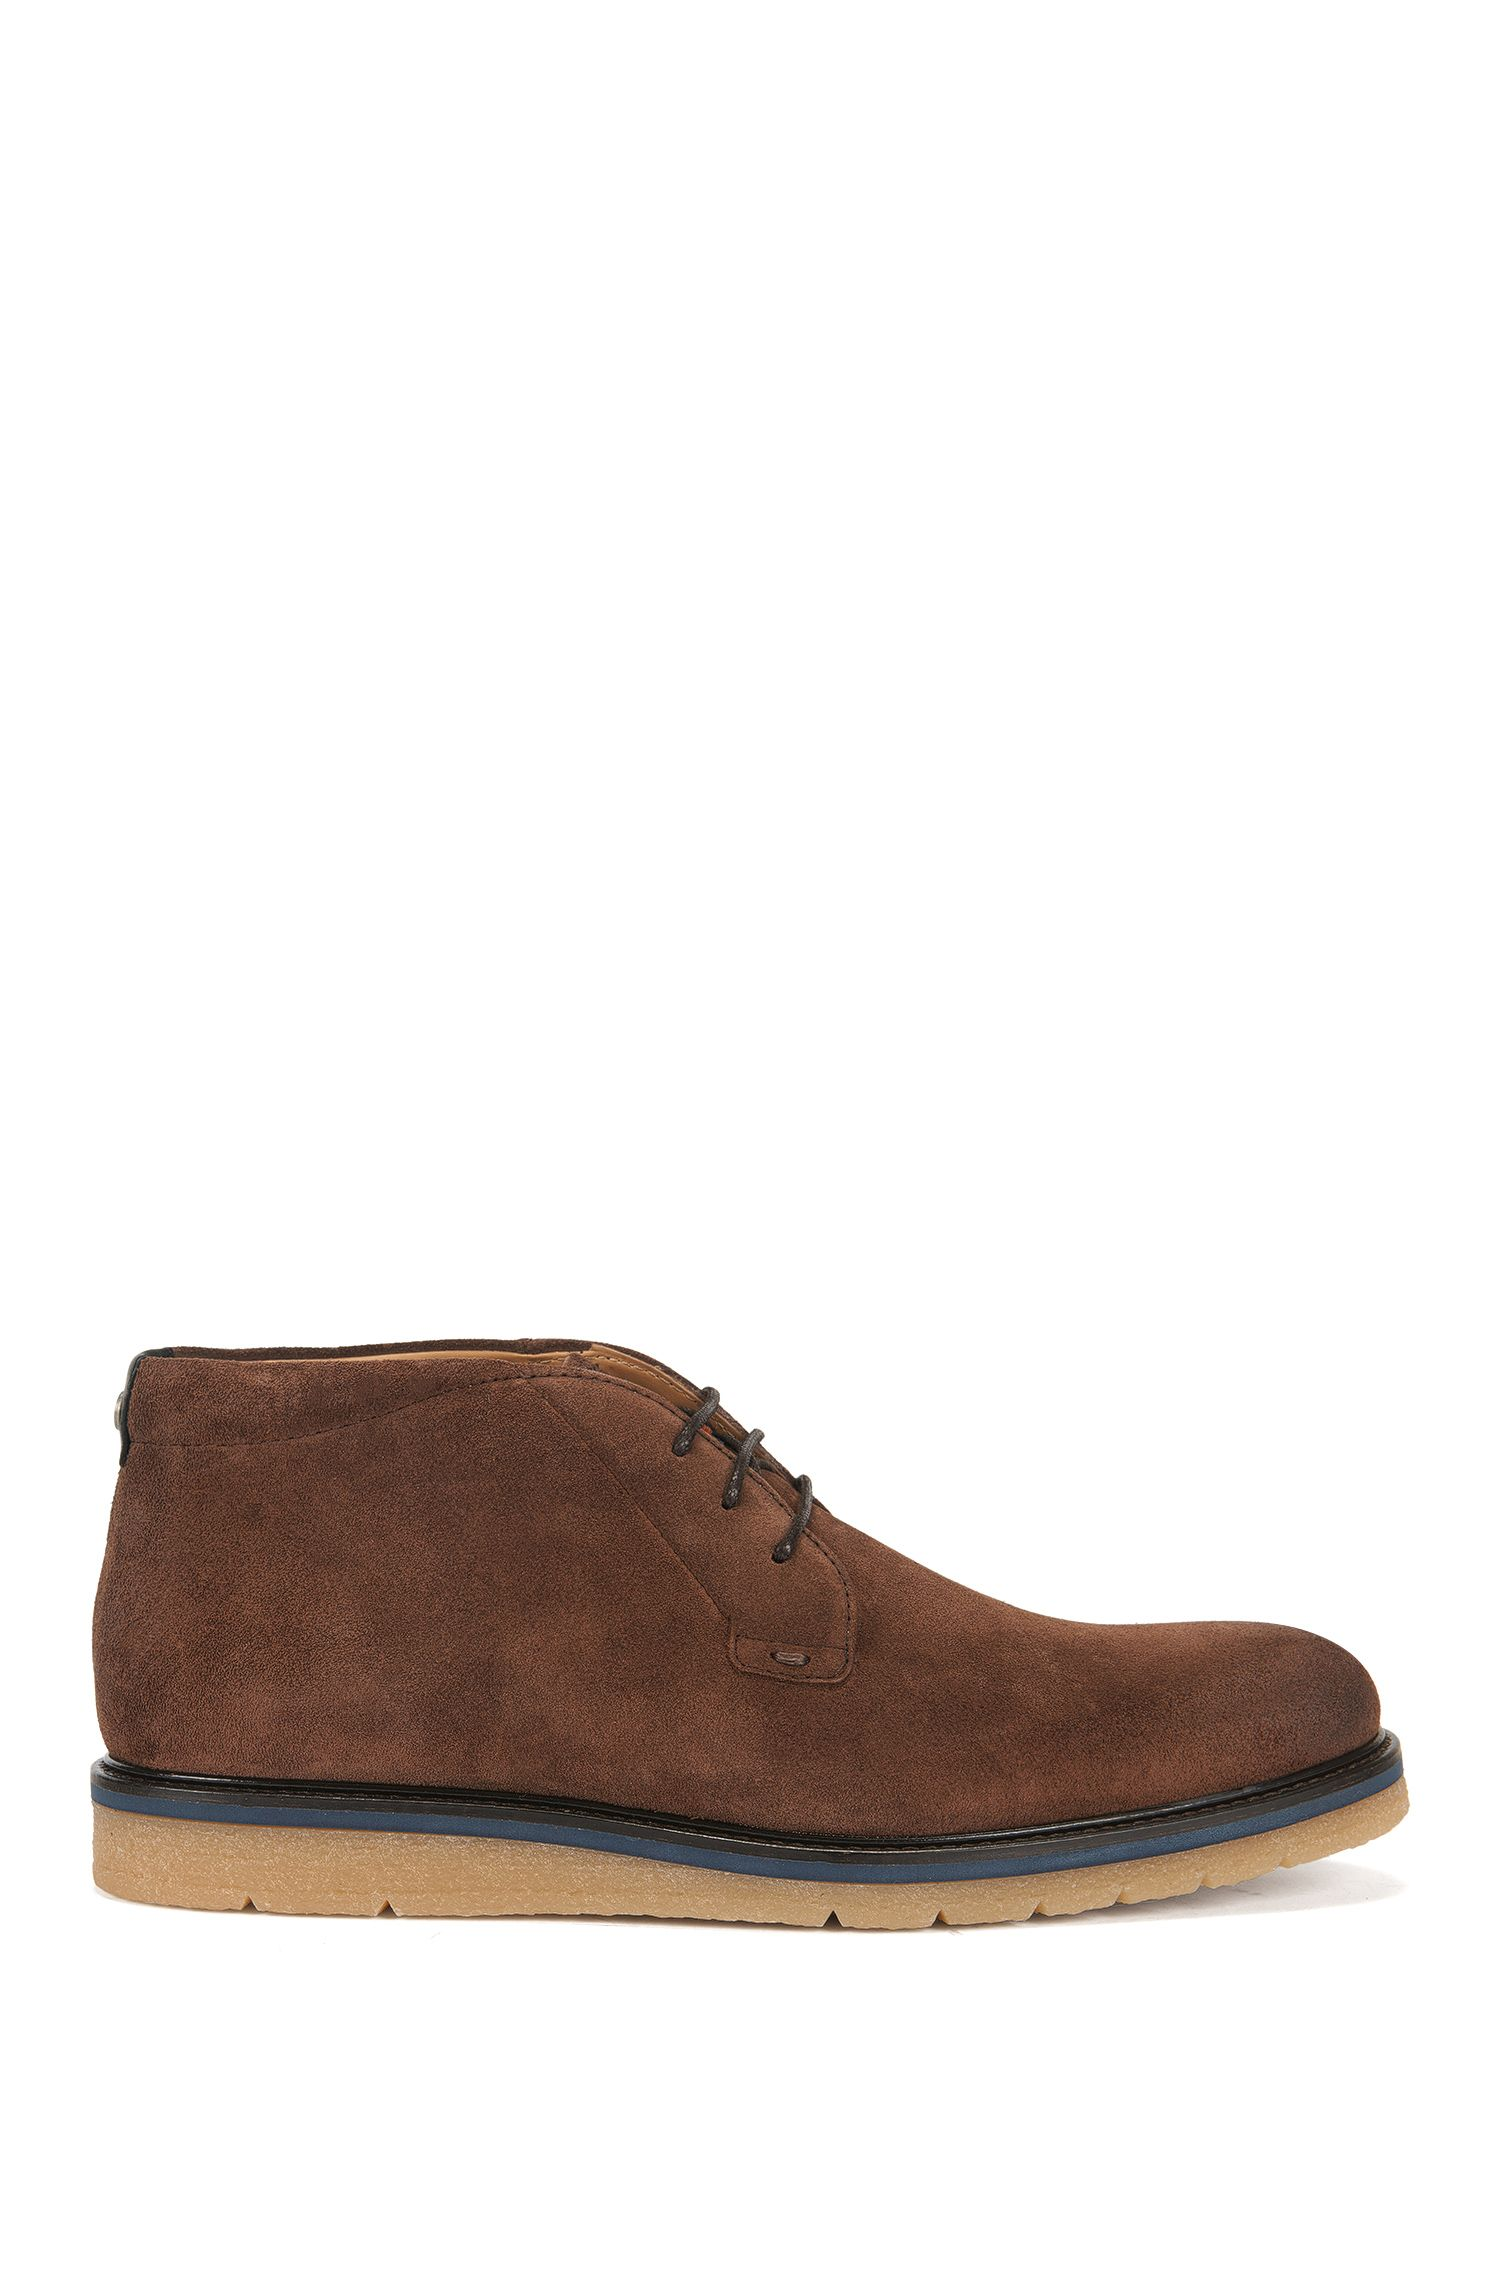 Suede Desert Boot | Tune Desb SD